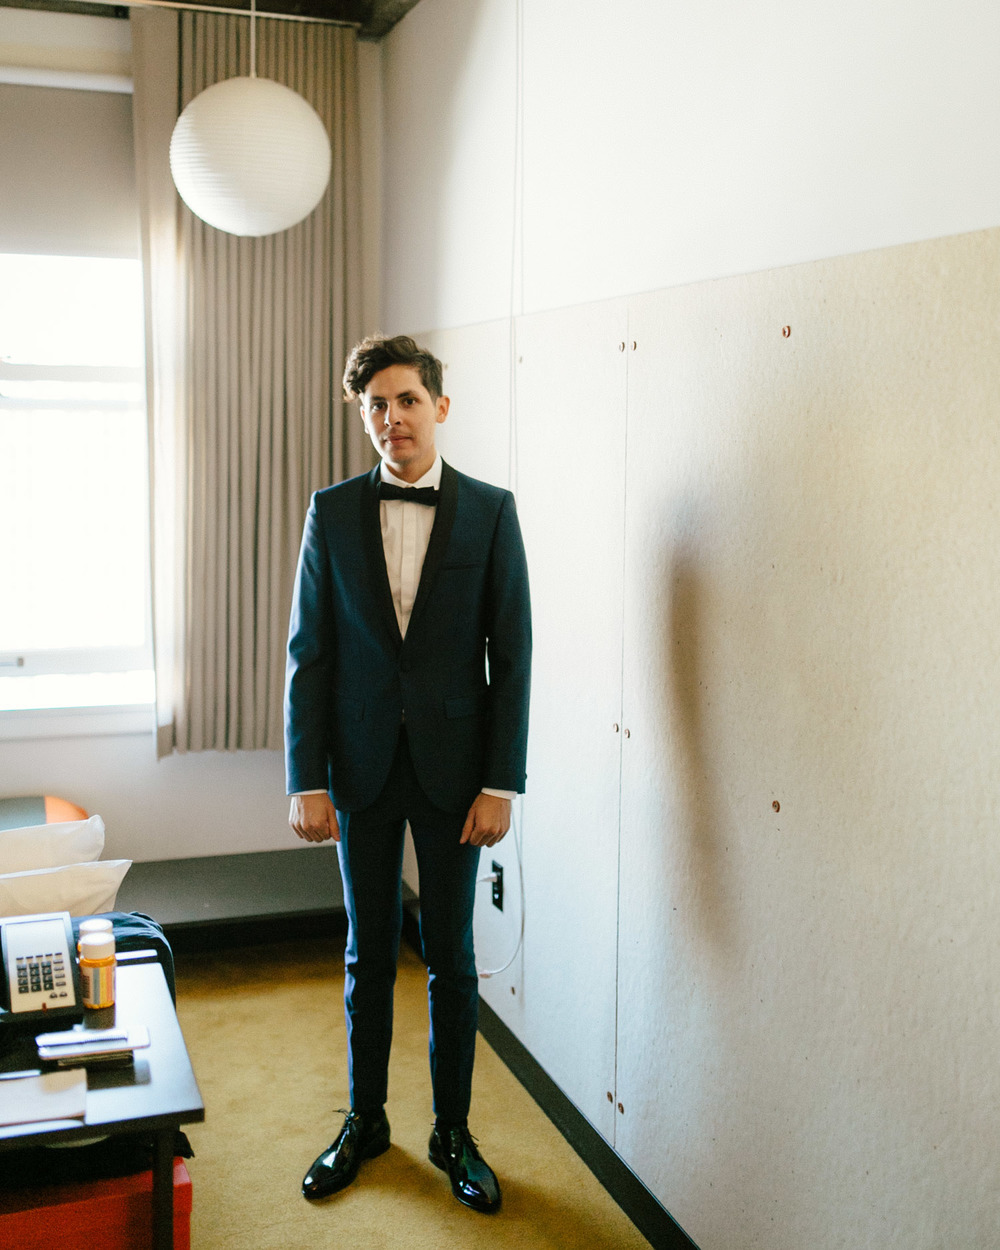 Los Angeles Wedding Photographer, Ace Hotel, Millwick Wedding - The Gathering Season x weareleoandkat 023.JPG